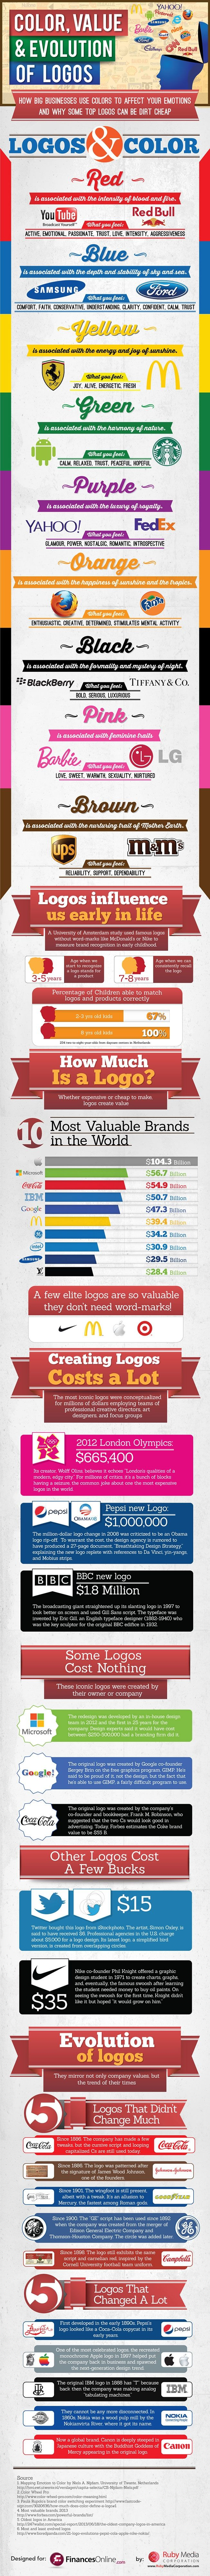 Infographic: What the Color of Your Logo Says About Your Brand   Adweek